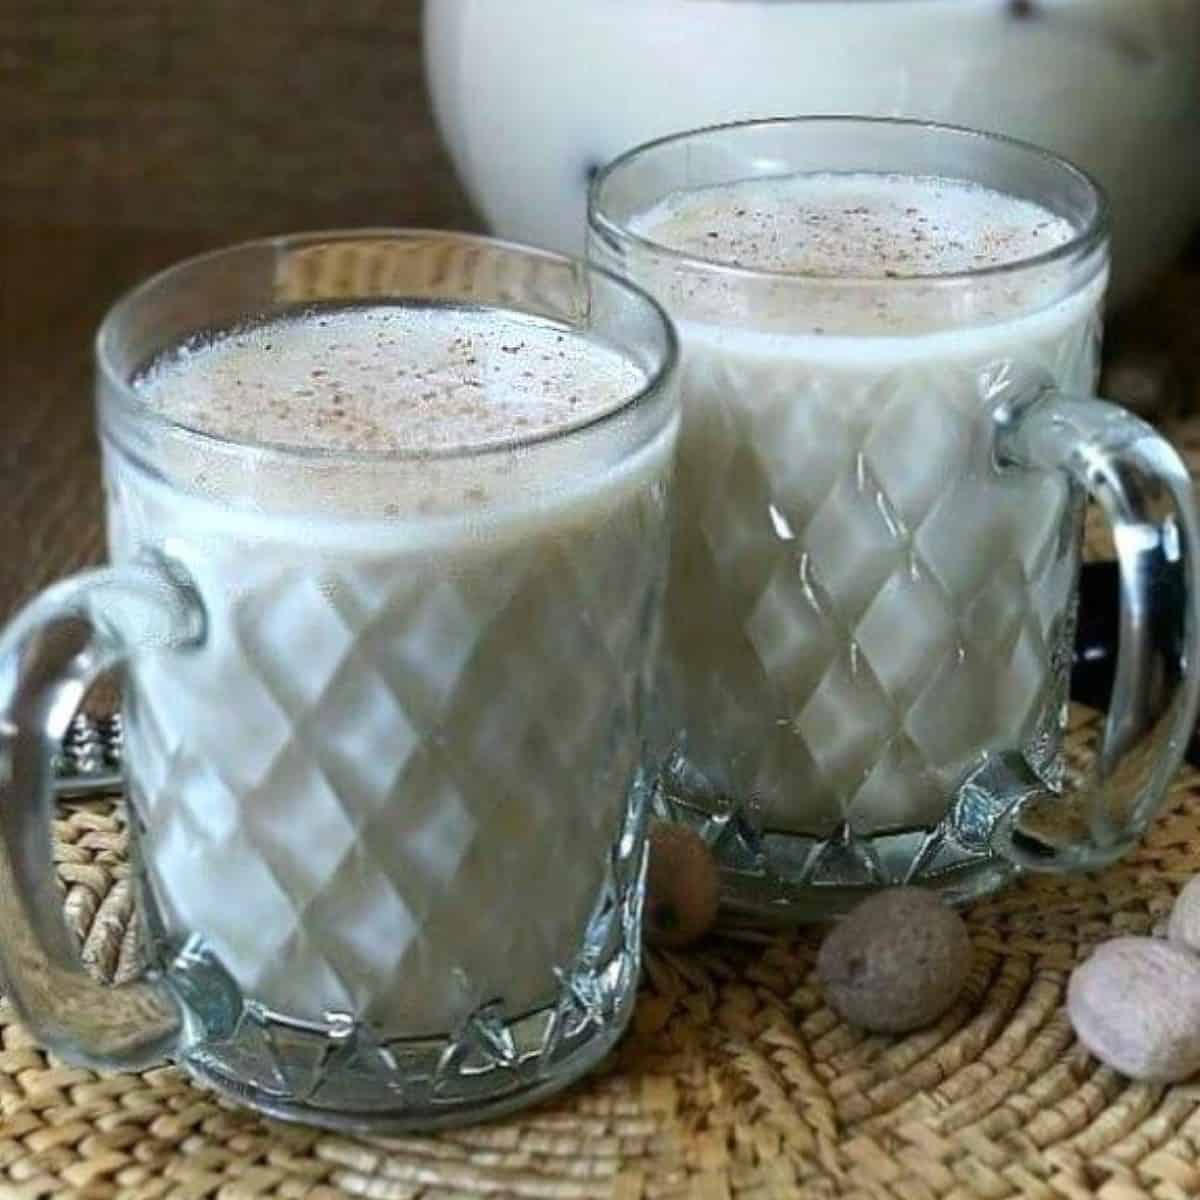 Two glass mugs filled with milk nog rum punch as one of our Vegan Christmas recipes.